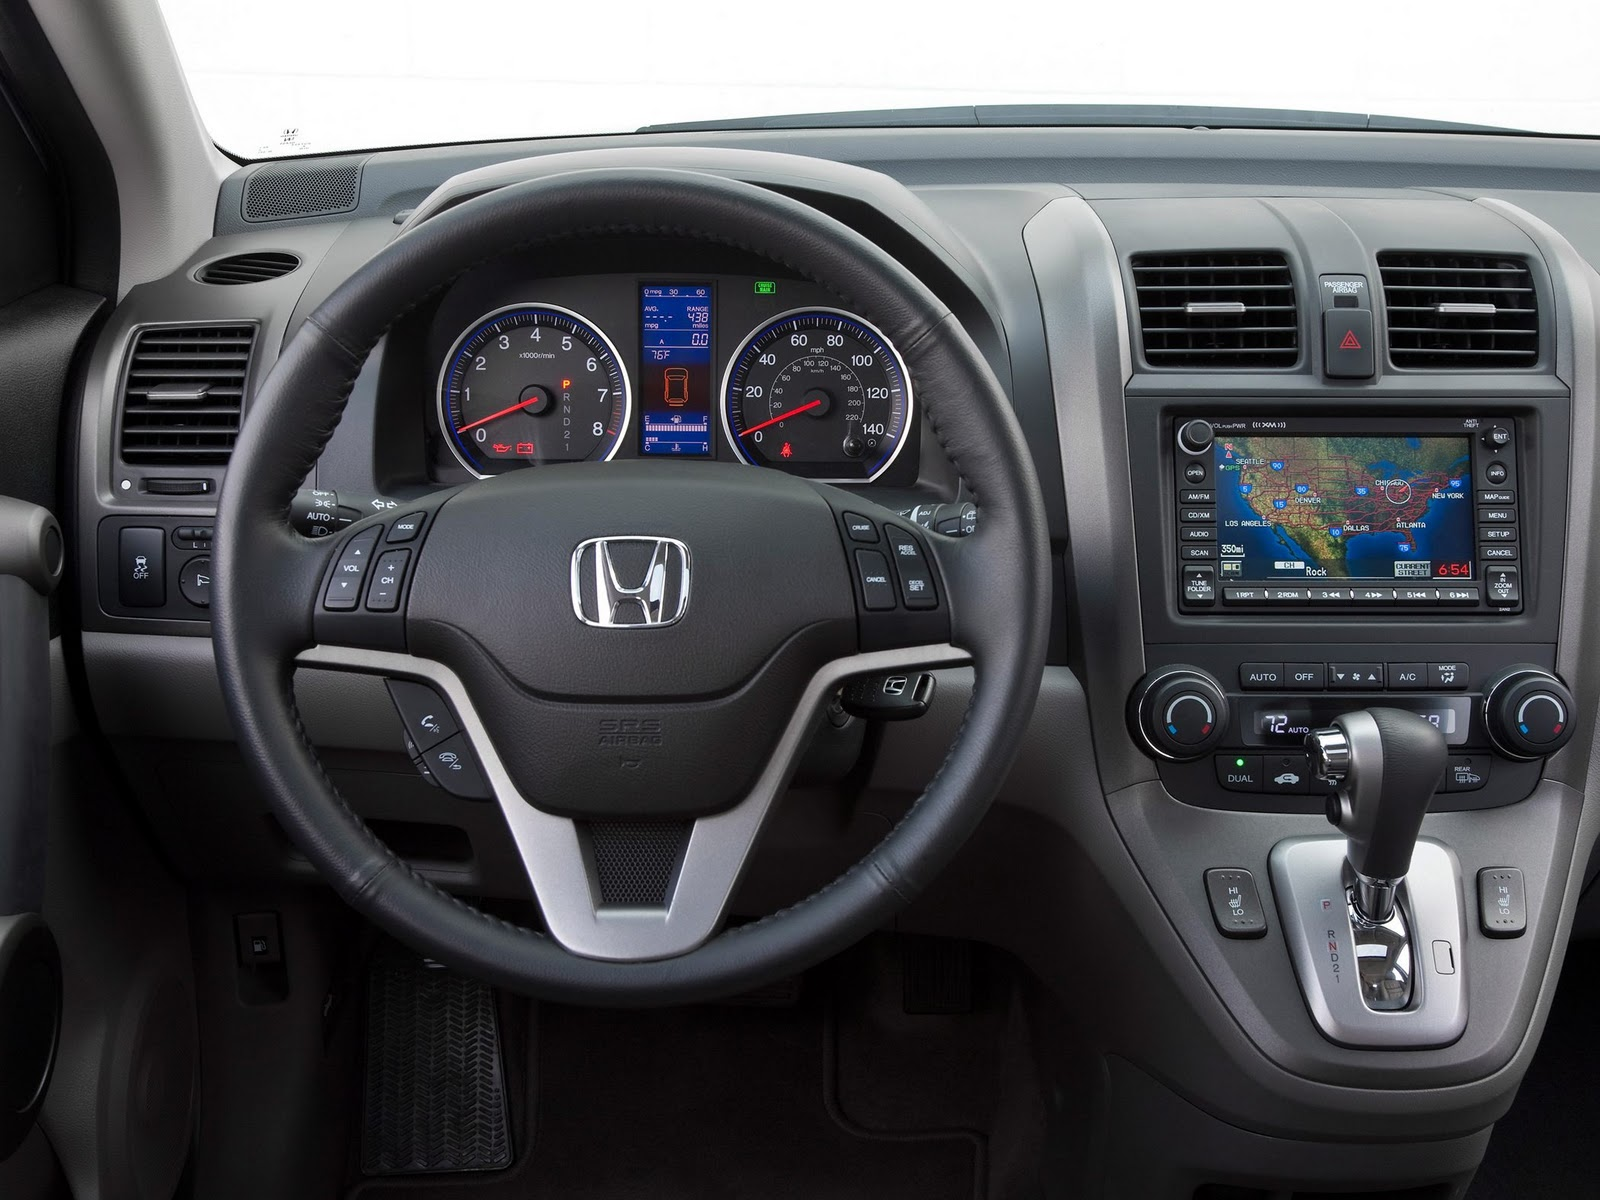 Honda crv 2011 Review Spec Price and Feature at World Expensive Car Wallpaper Picture Collections